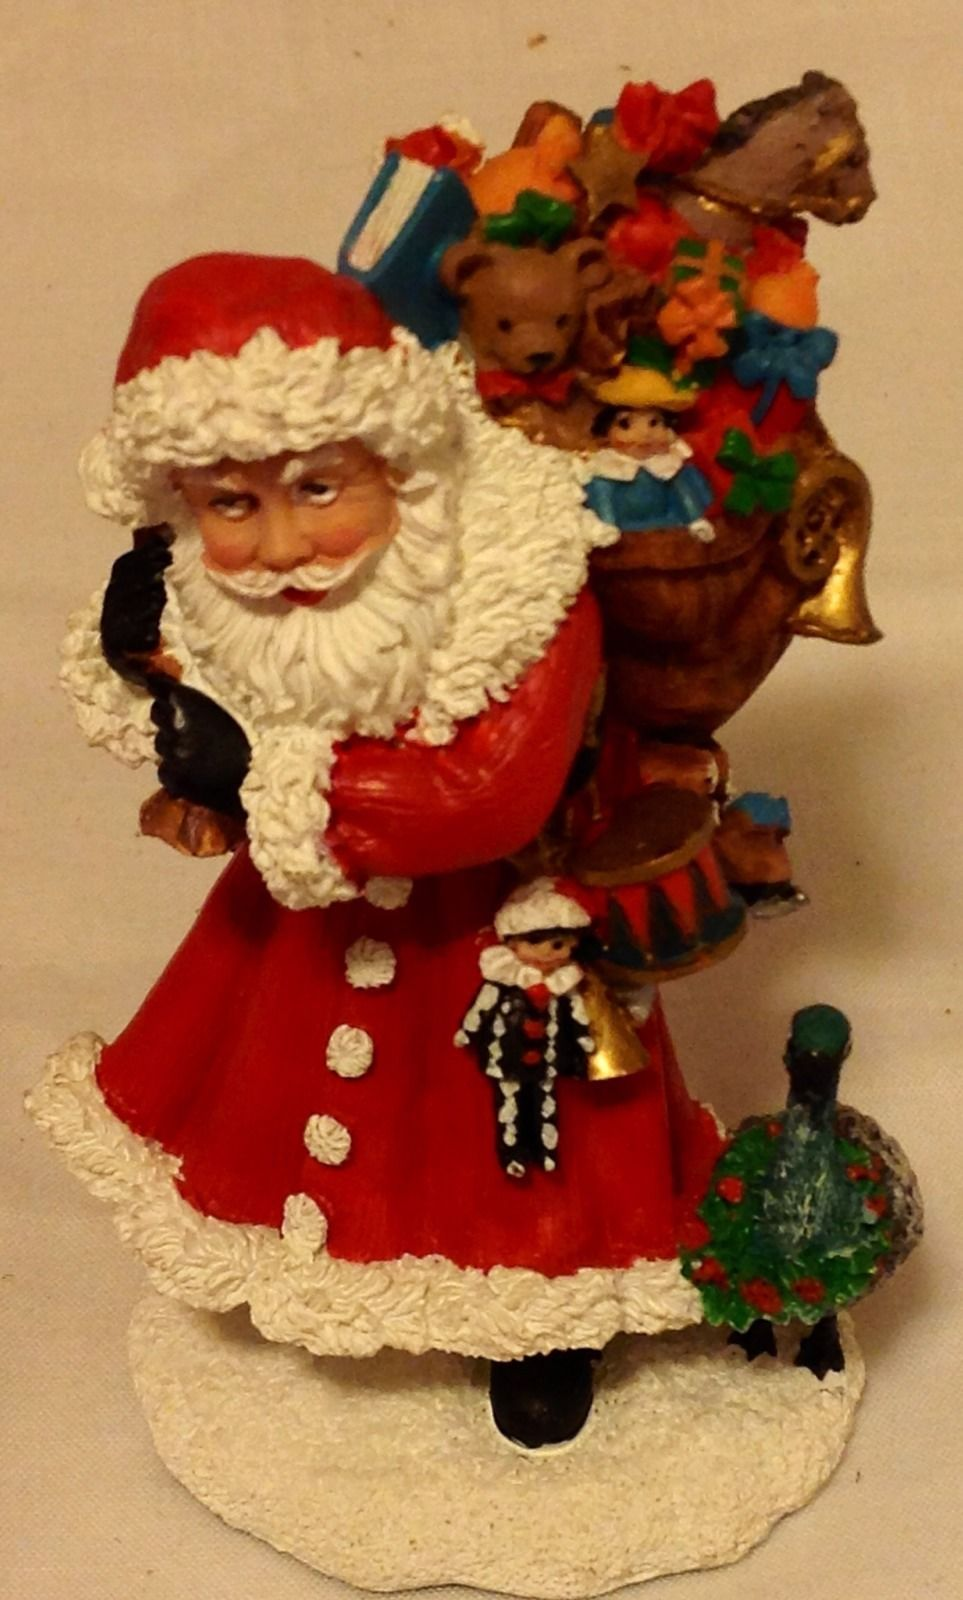 French canadian canada santa claus figurine and similar